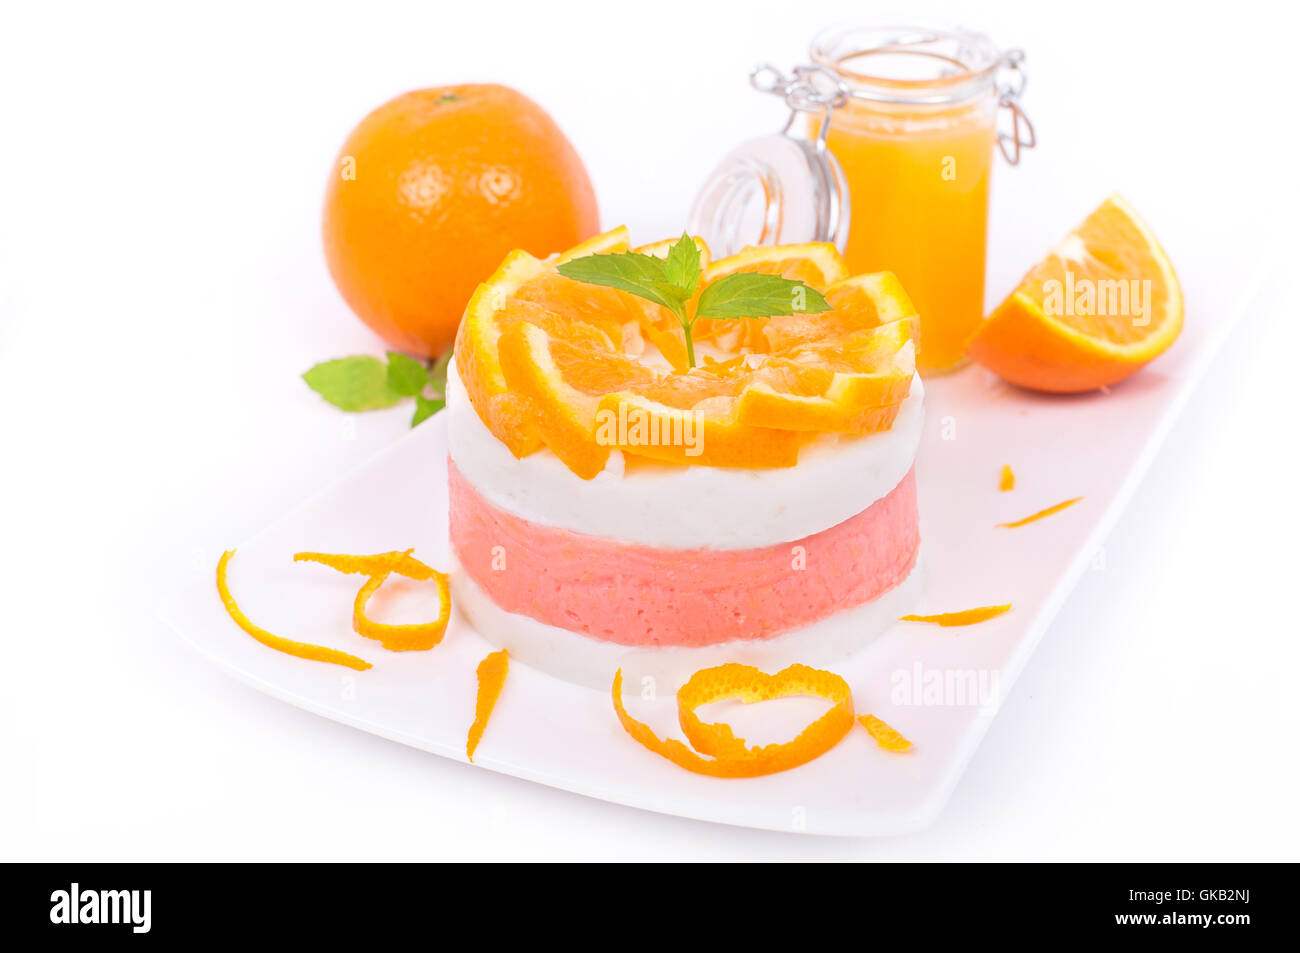 orange oranges dessert - Stock Image